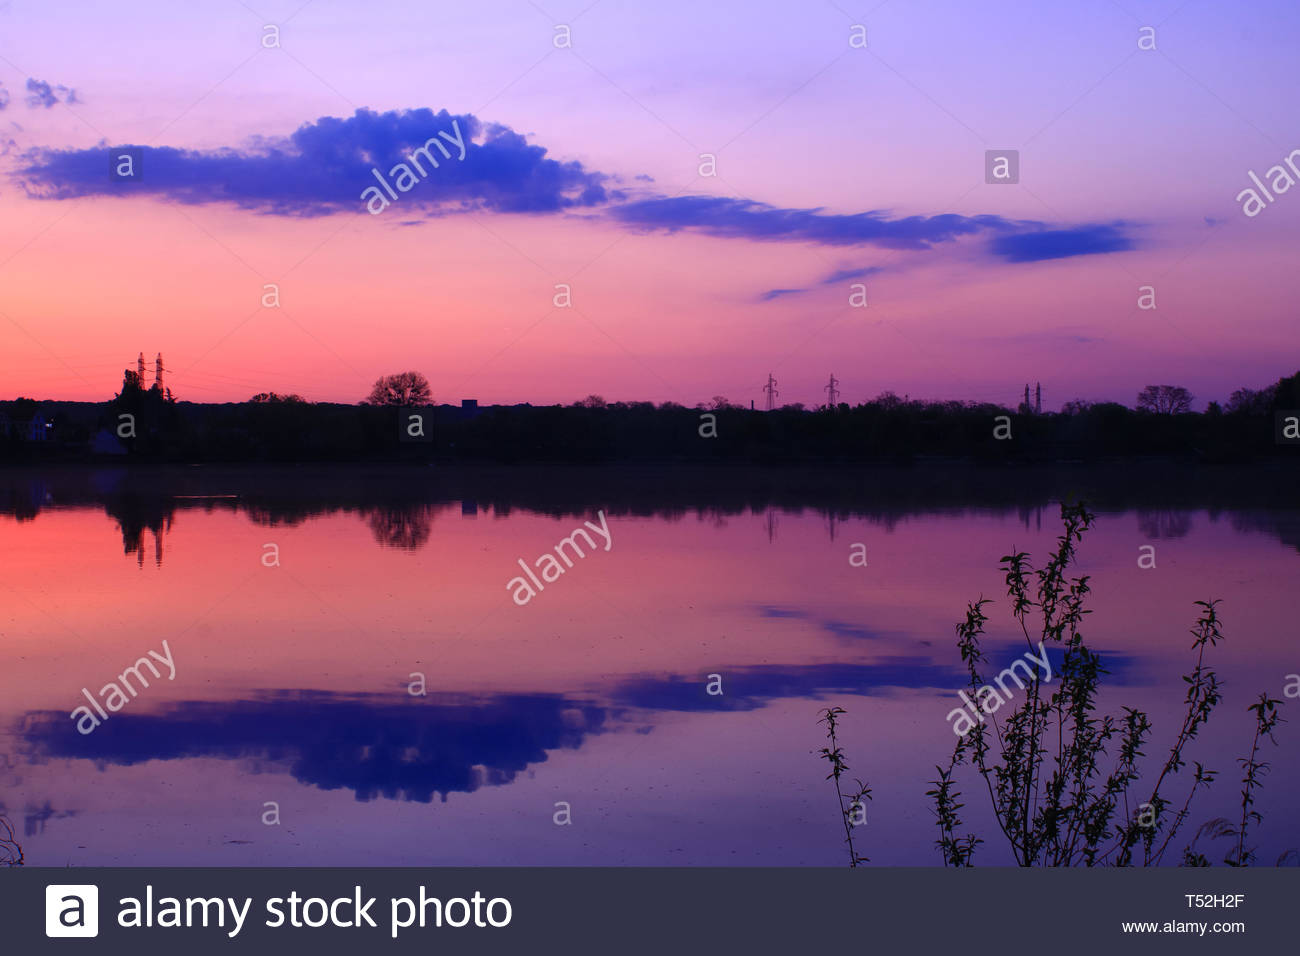 Beautiful reflection of pink and purple clouds in the sea water.  Romantic sunrise very colorful in the countryside - Stock Image